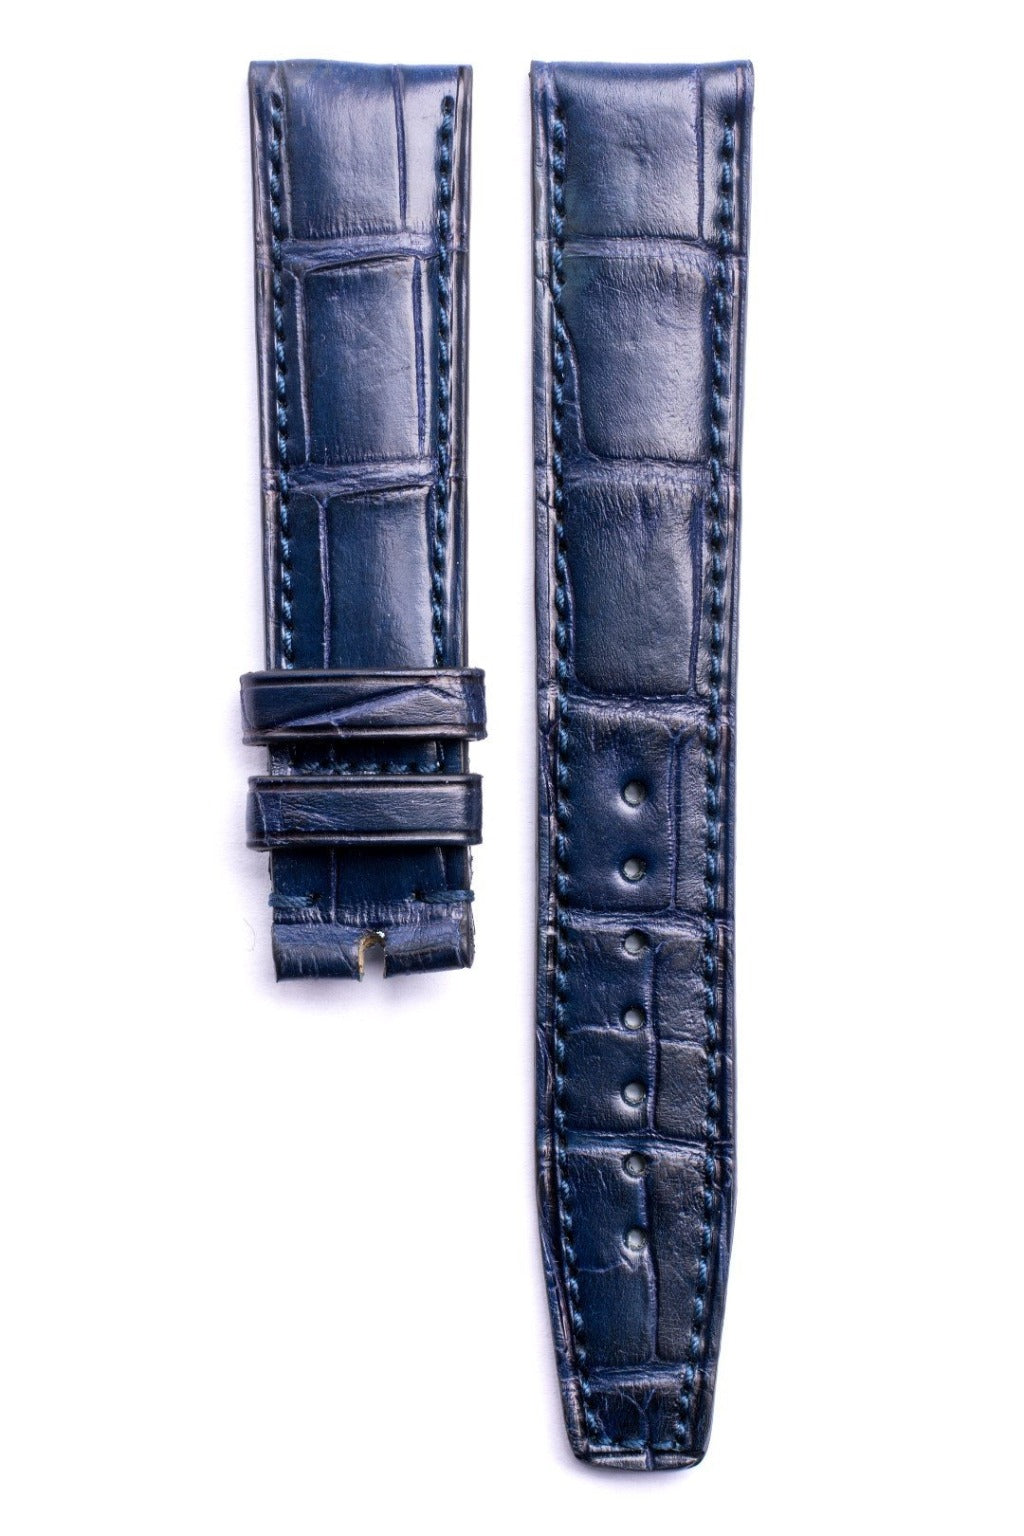 Monochrome Straps – Blue Alligator Leather Strap